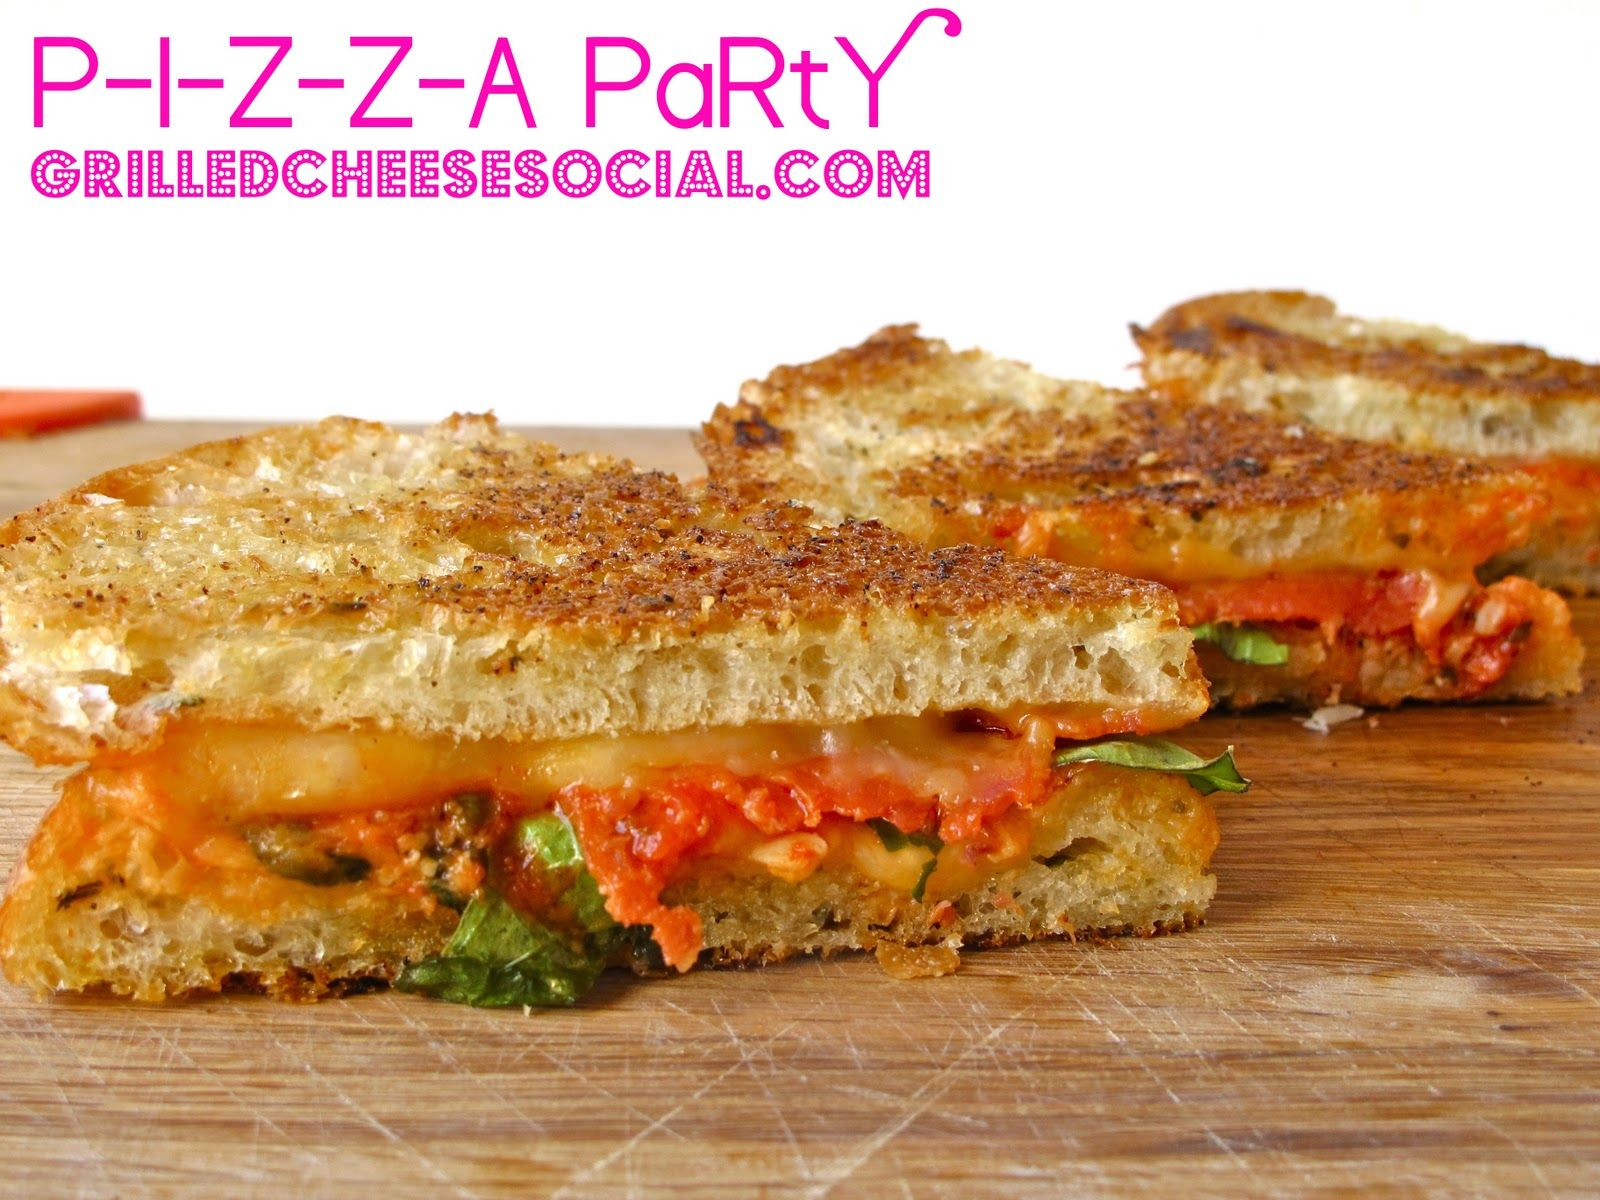 Grilled Cheese Social: P-I-Z-Z-A PaRtY